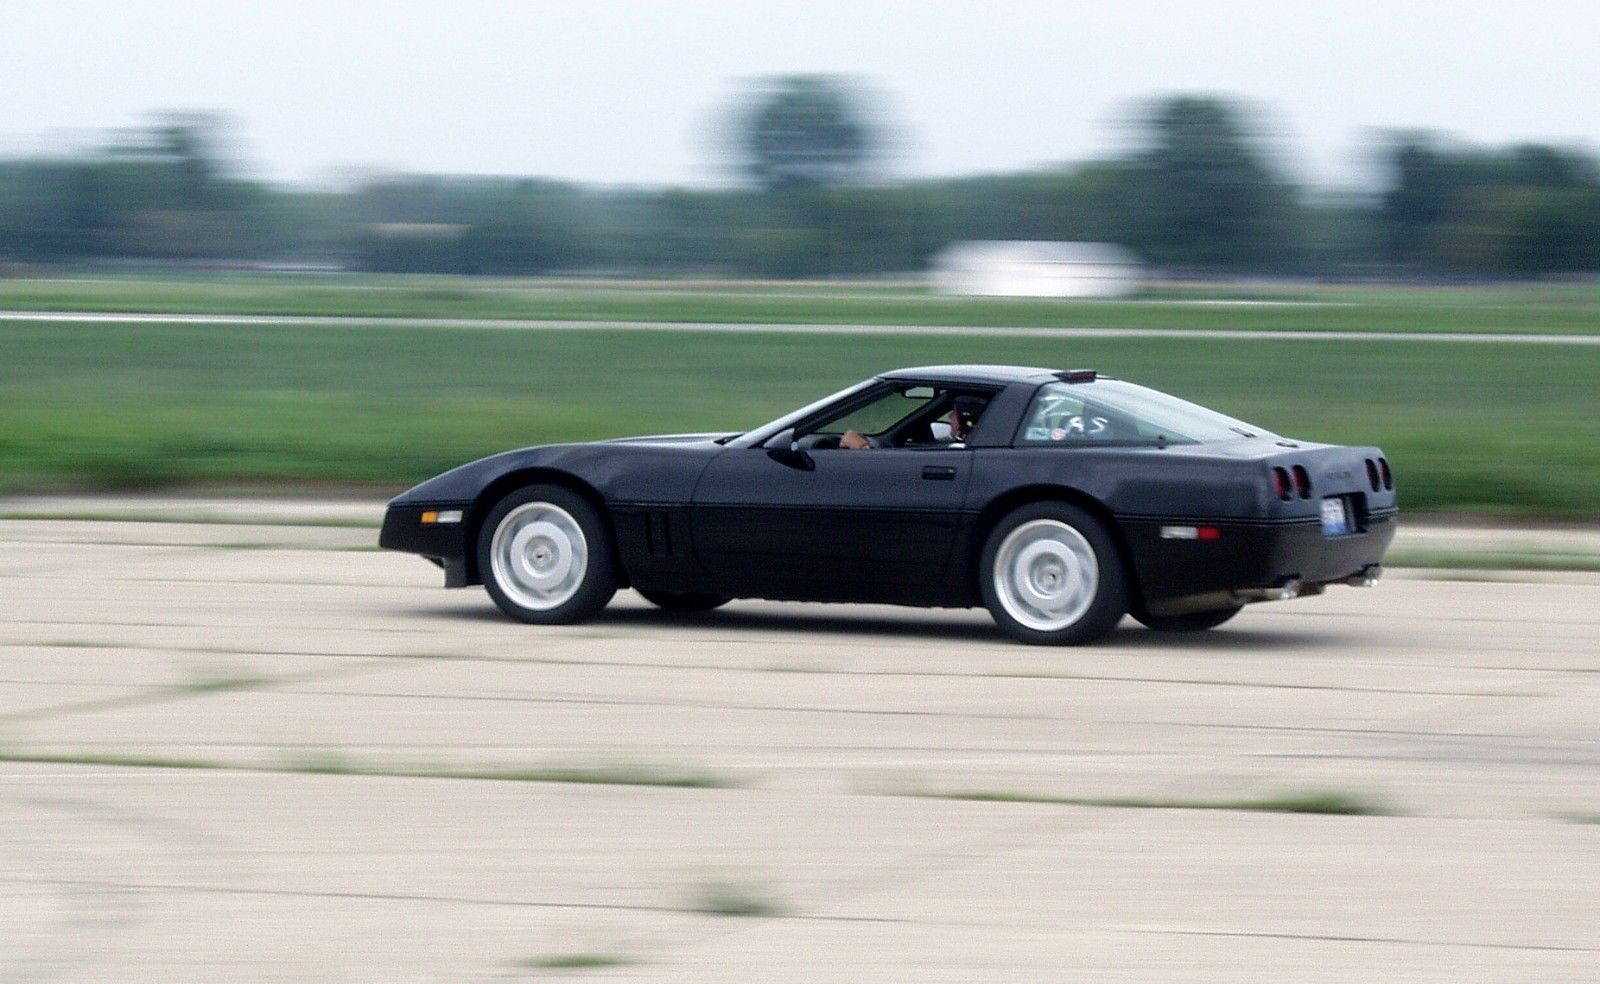 Primary image for 1992 Chevrolet Corvette c4 on track POSTER 24 x 36 inch | black